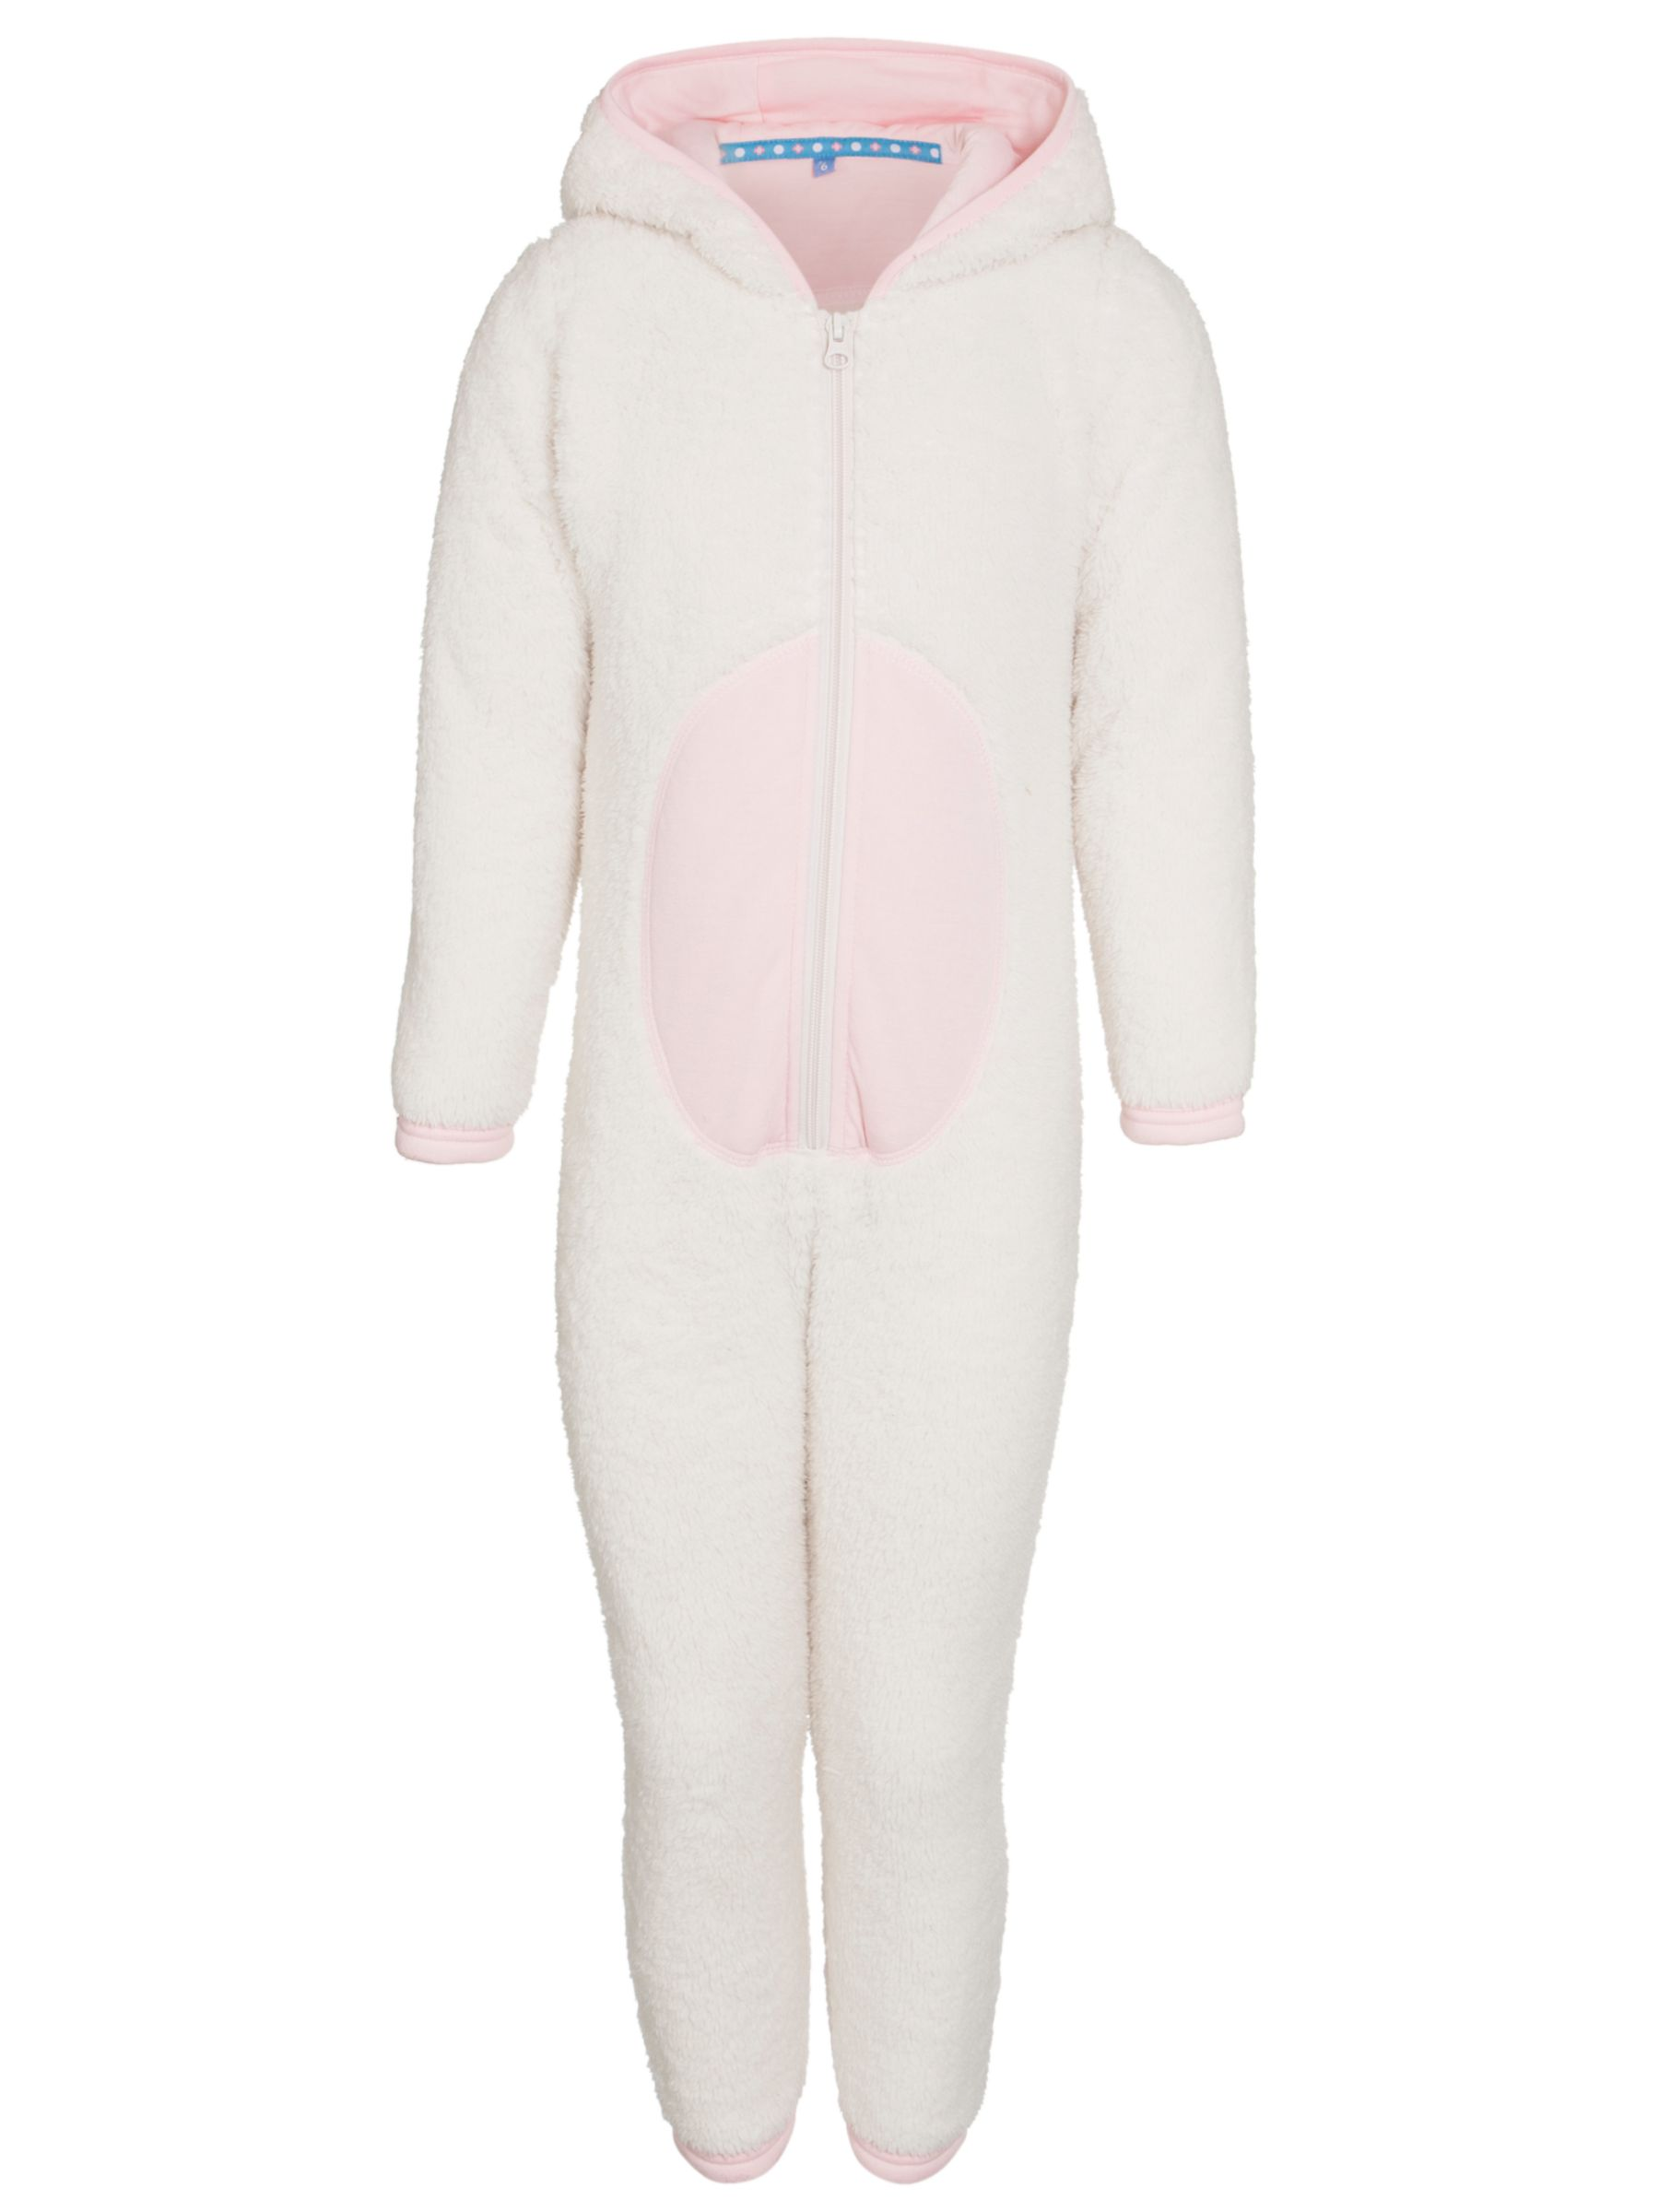 John Lewis Girl Rabbit Fleece Onesie, Cream